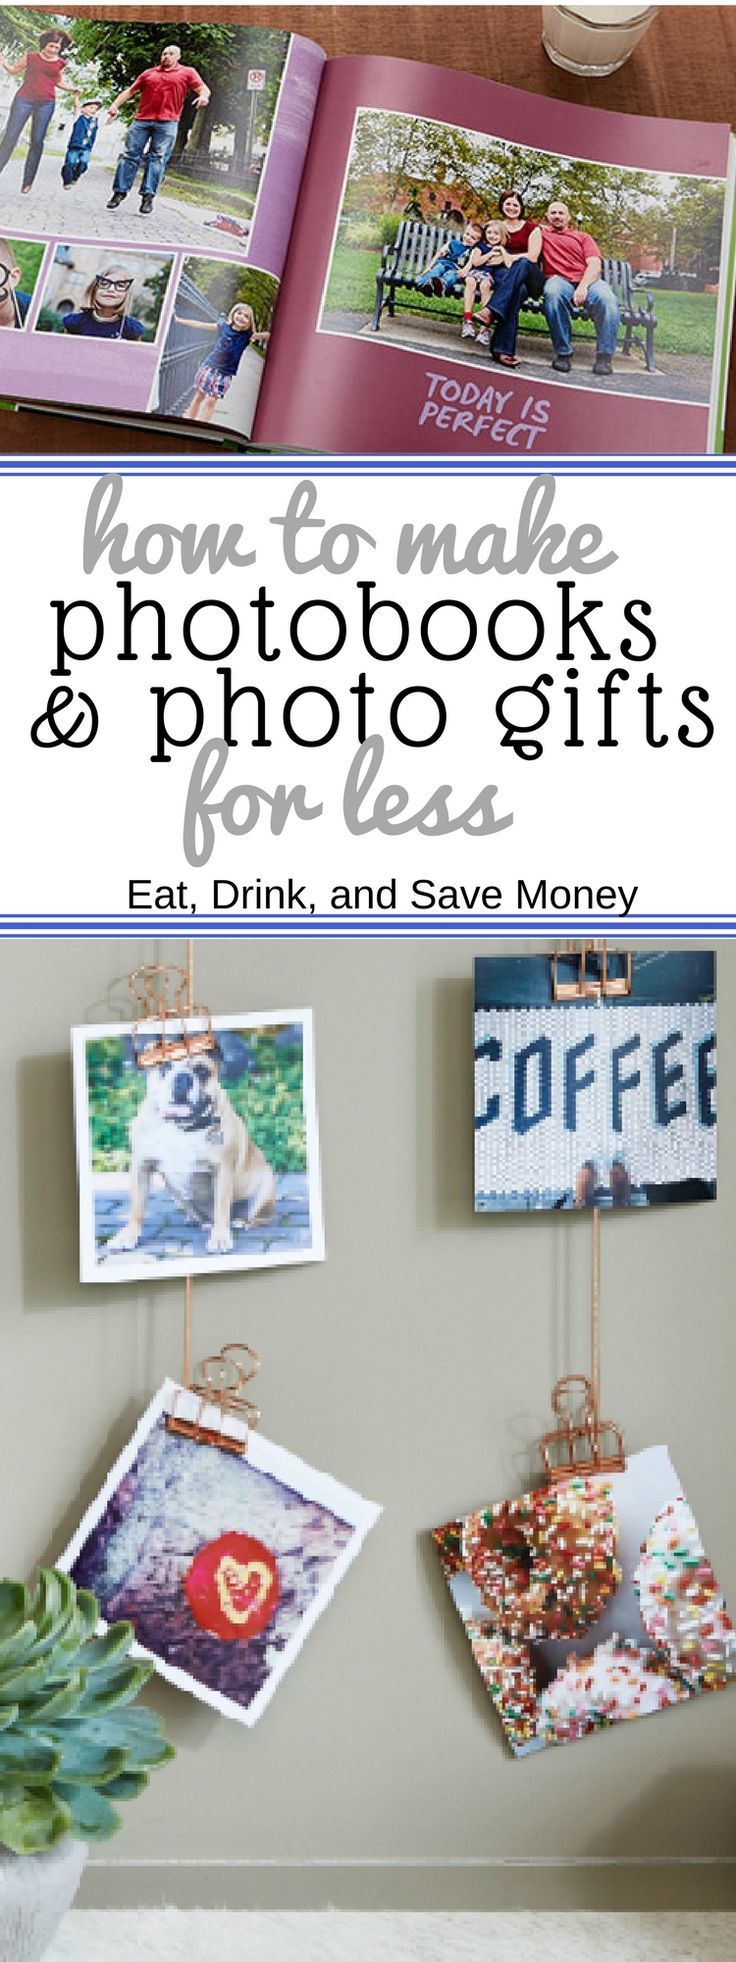 How to make photobooks & photo gifts for less using Shutterfly